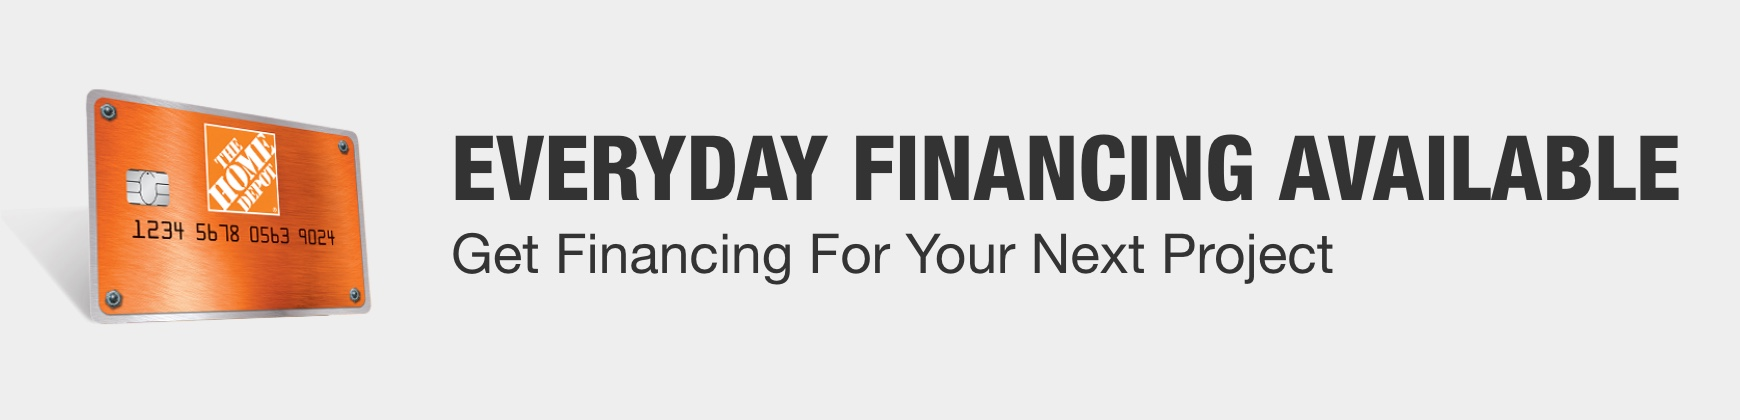 Get Financing For Your Next Project